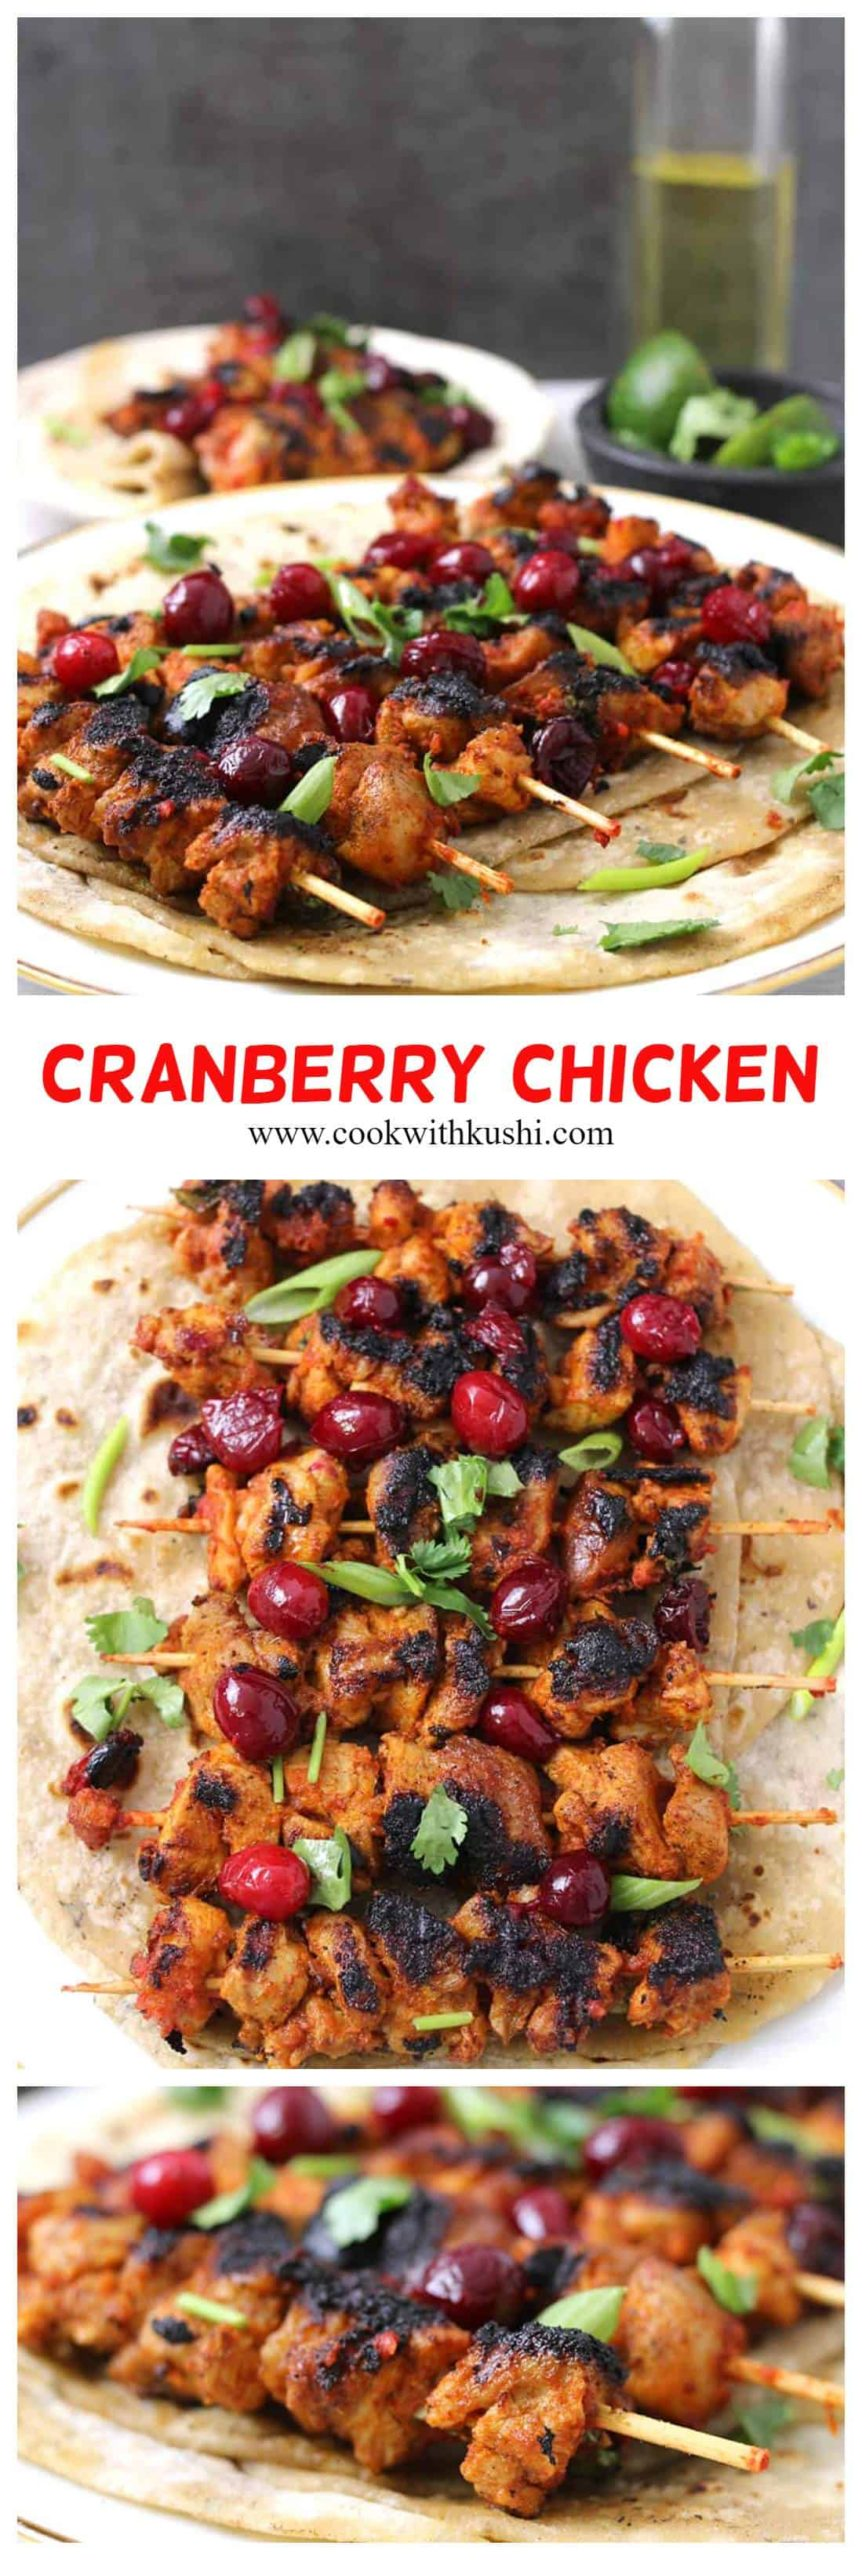 Cranberry Chicken is a super delicious and easy to make side dish or appetizer recipe with perfect combination of sourness and spiciness that will be a showstopper at your dinner table this Thanksgiving or Christmas. I just love how simple it is to put everything together. #dinnersides #appetizers #thanksgivingdinner #christmasfood #cranberryrecipes #cranberries #footballfood #superbowl #chickenthighs #grilledchicken #cranberrychickensalad